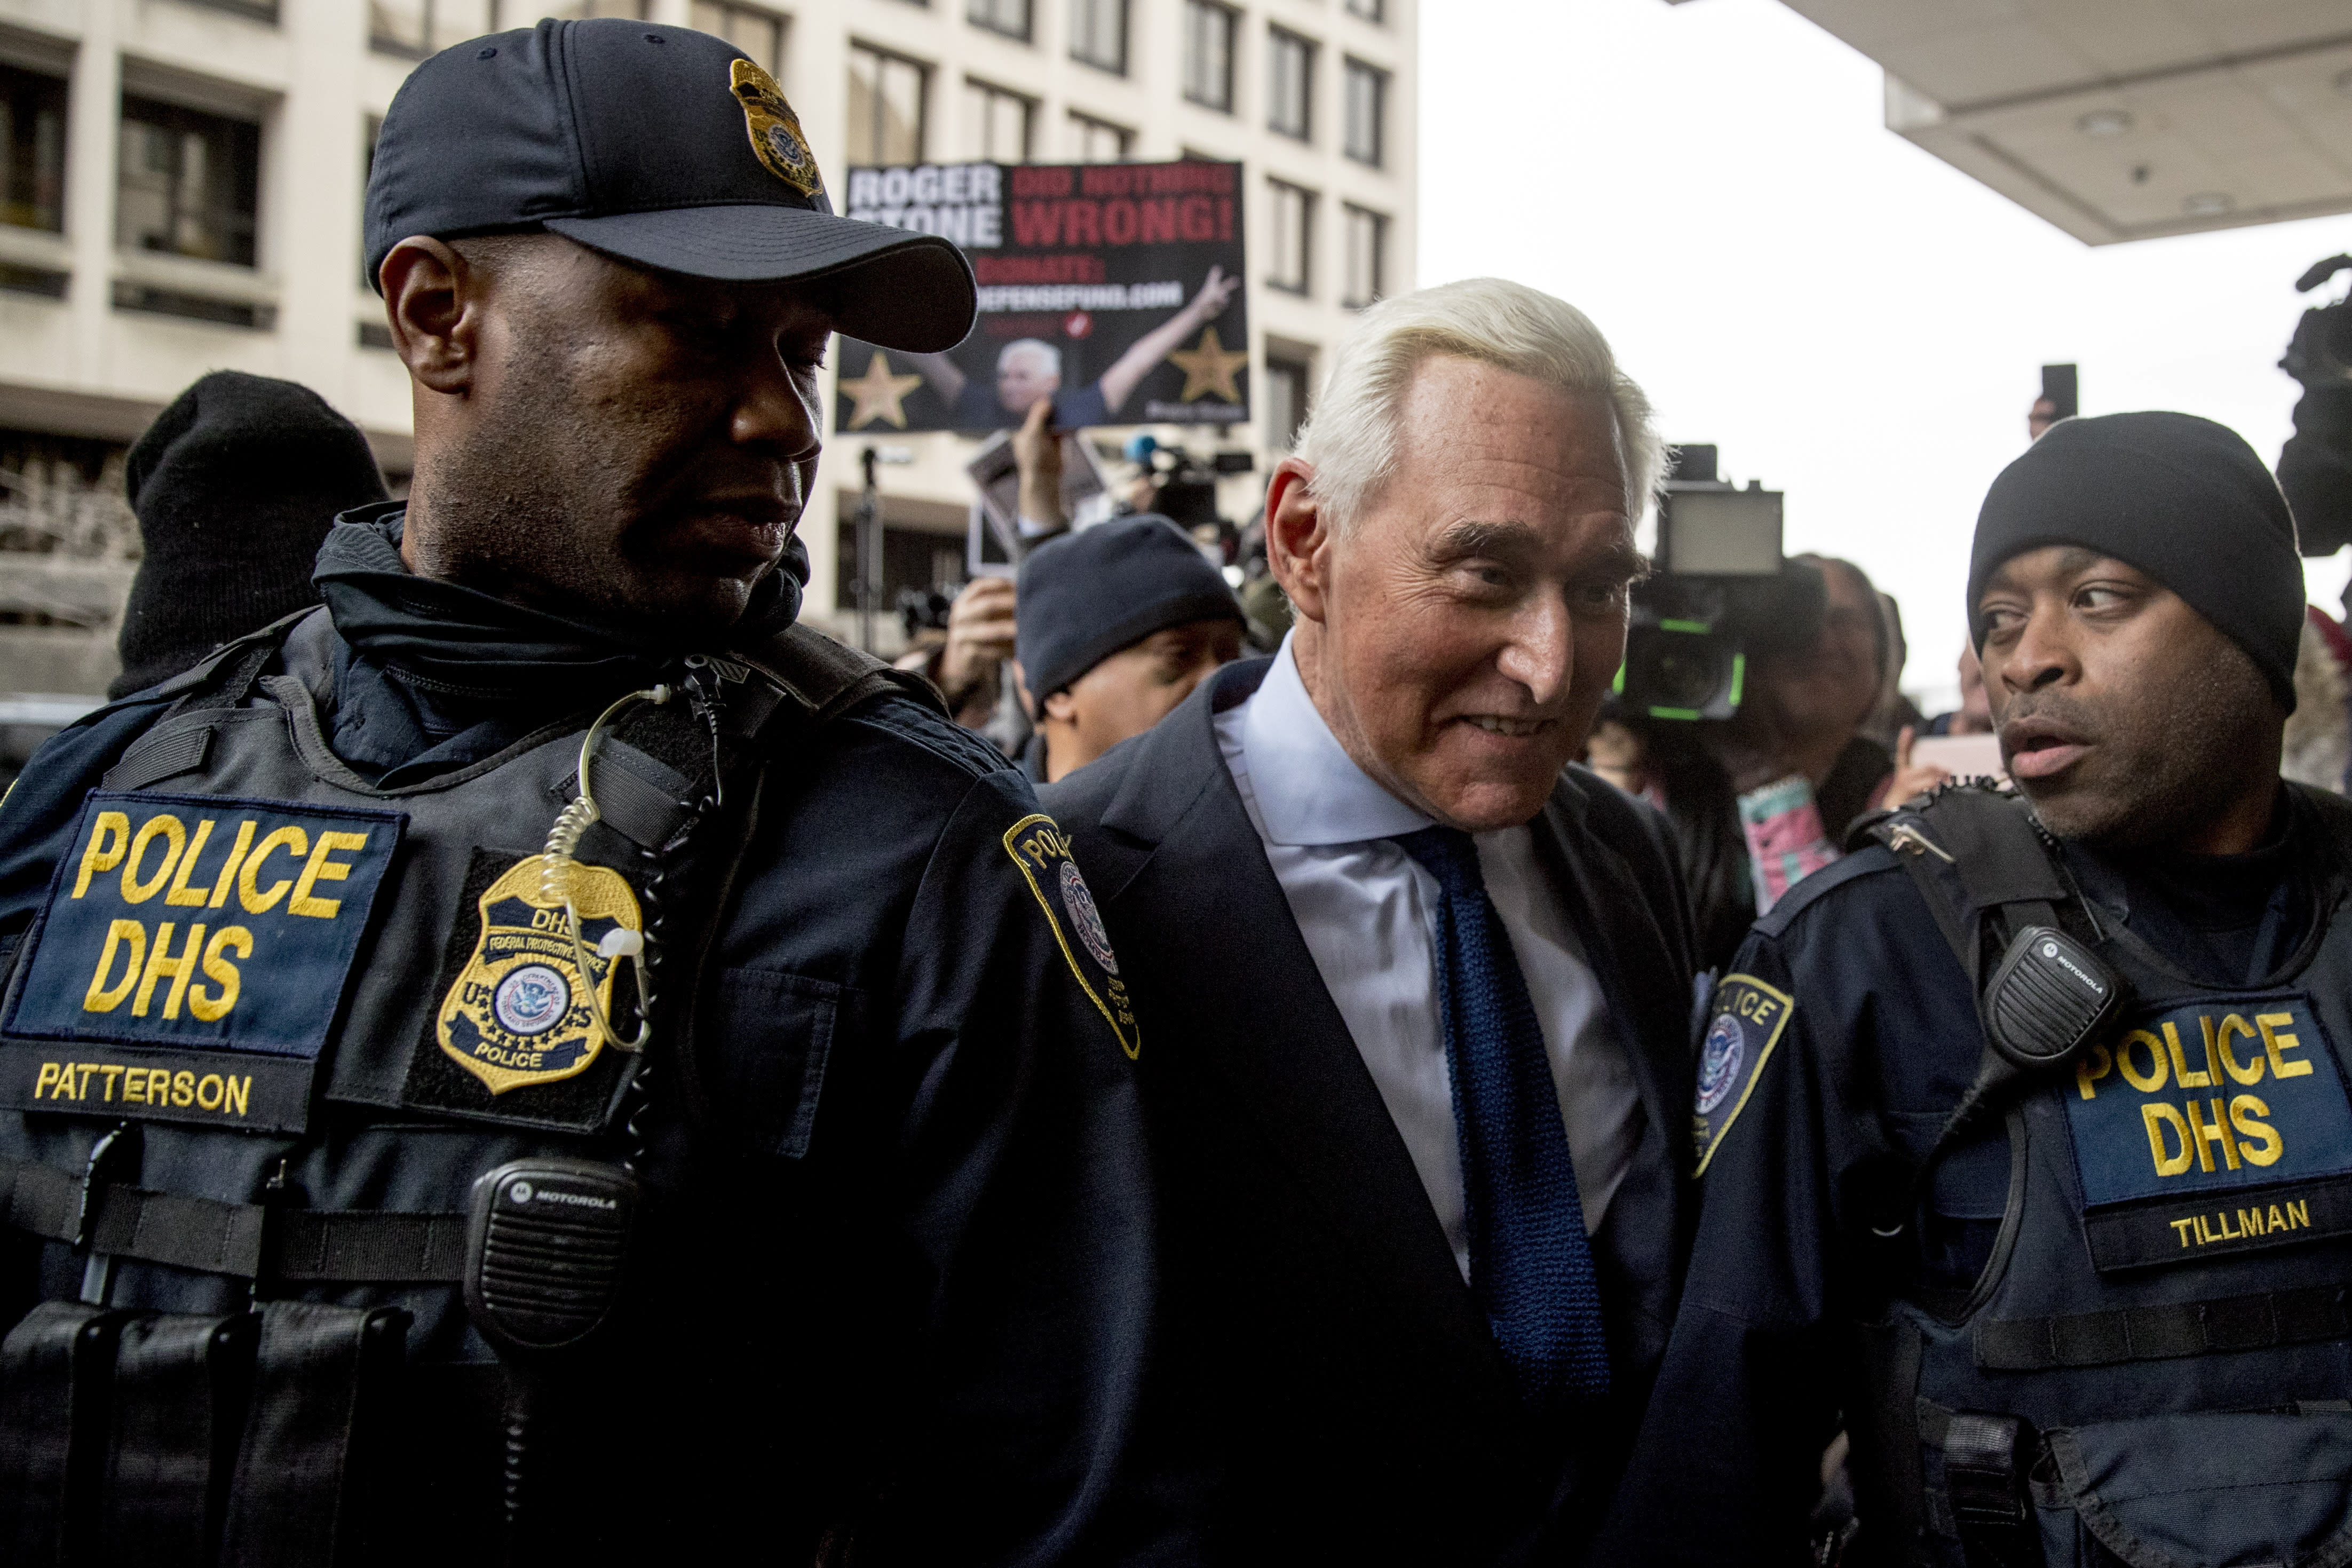 Former campaign adviser for President Donald Trump, Roger Stone arrives at Federal Court, Tuesday, Jan. 29, 2019, in Washington. (AP Photo/Andrew Harnik)